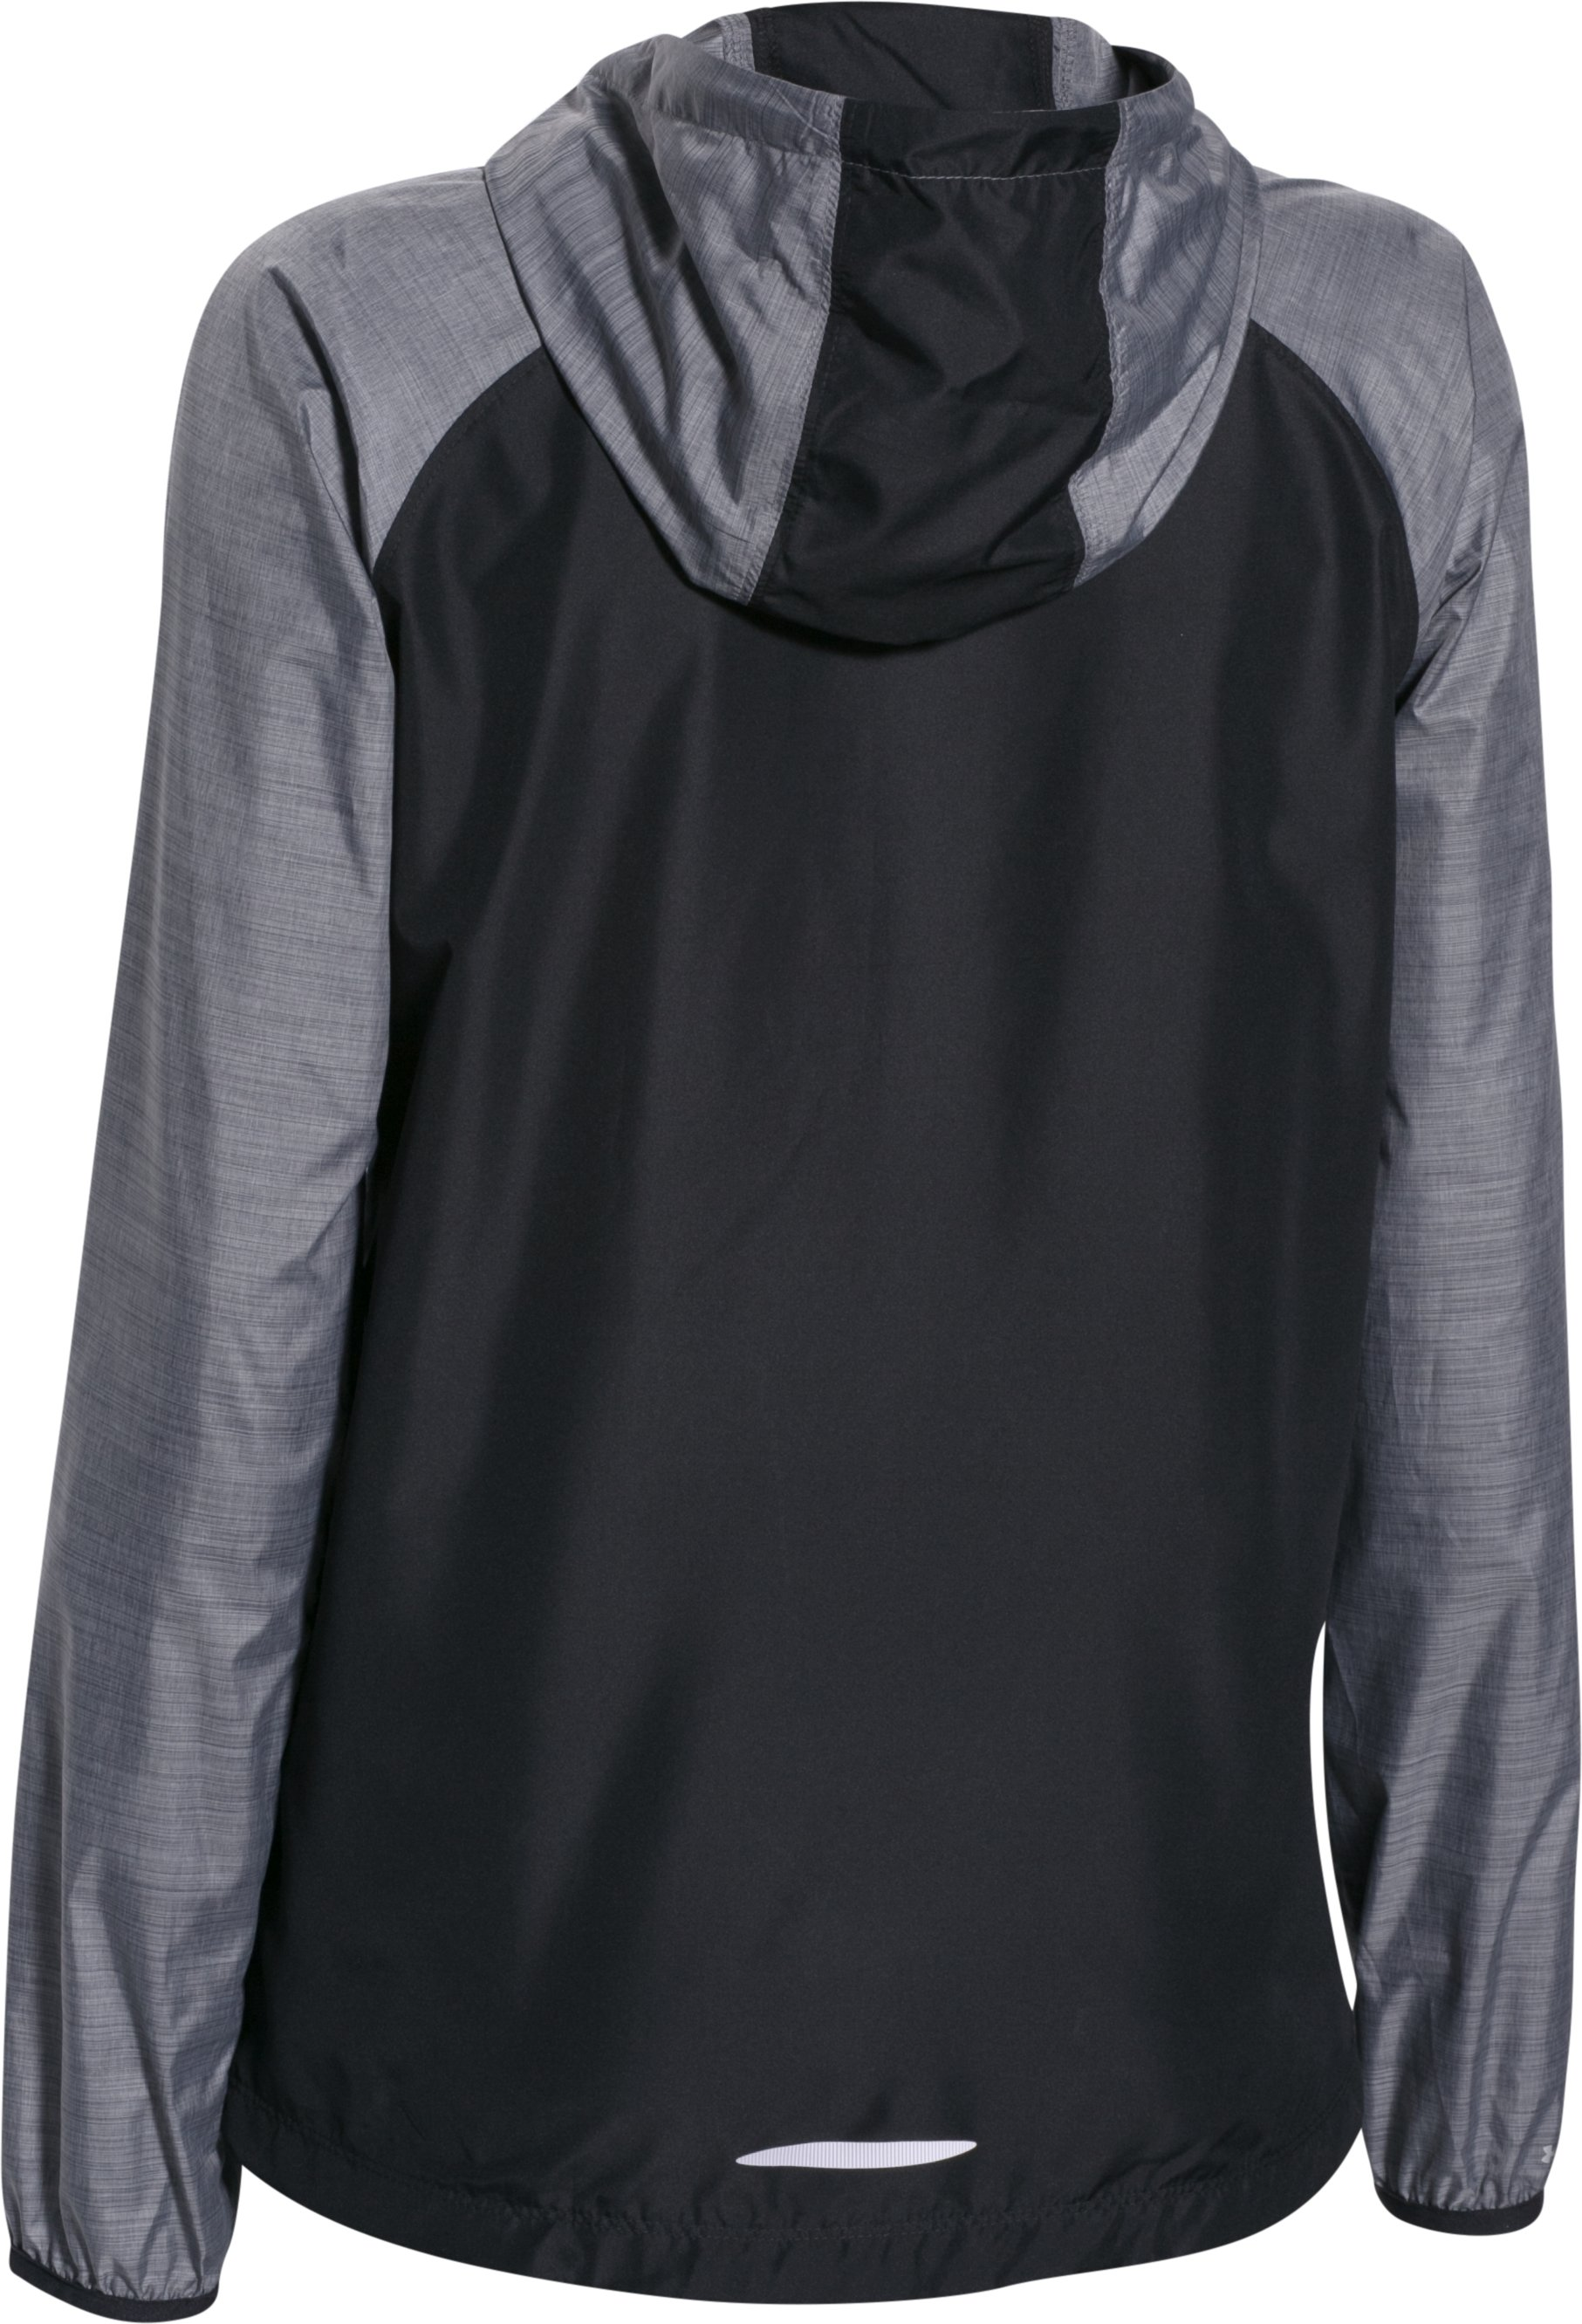 Women's UA Qualifier Woven Jacket, Black , undefined